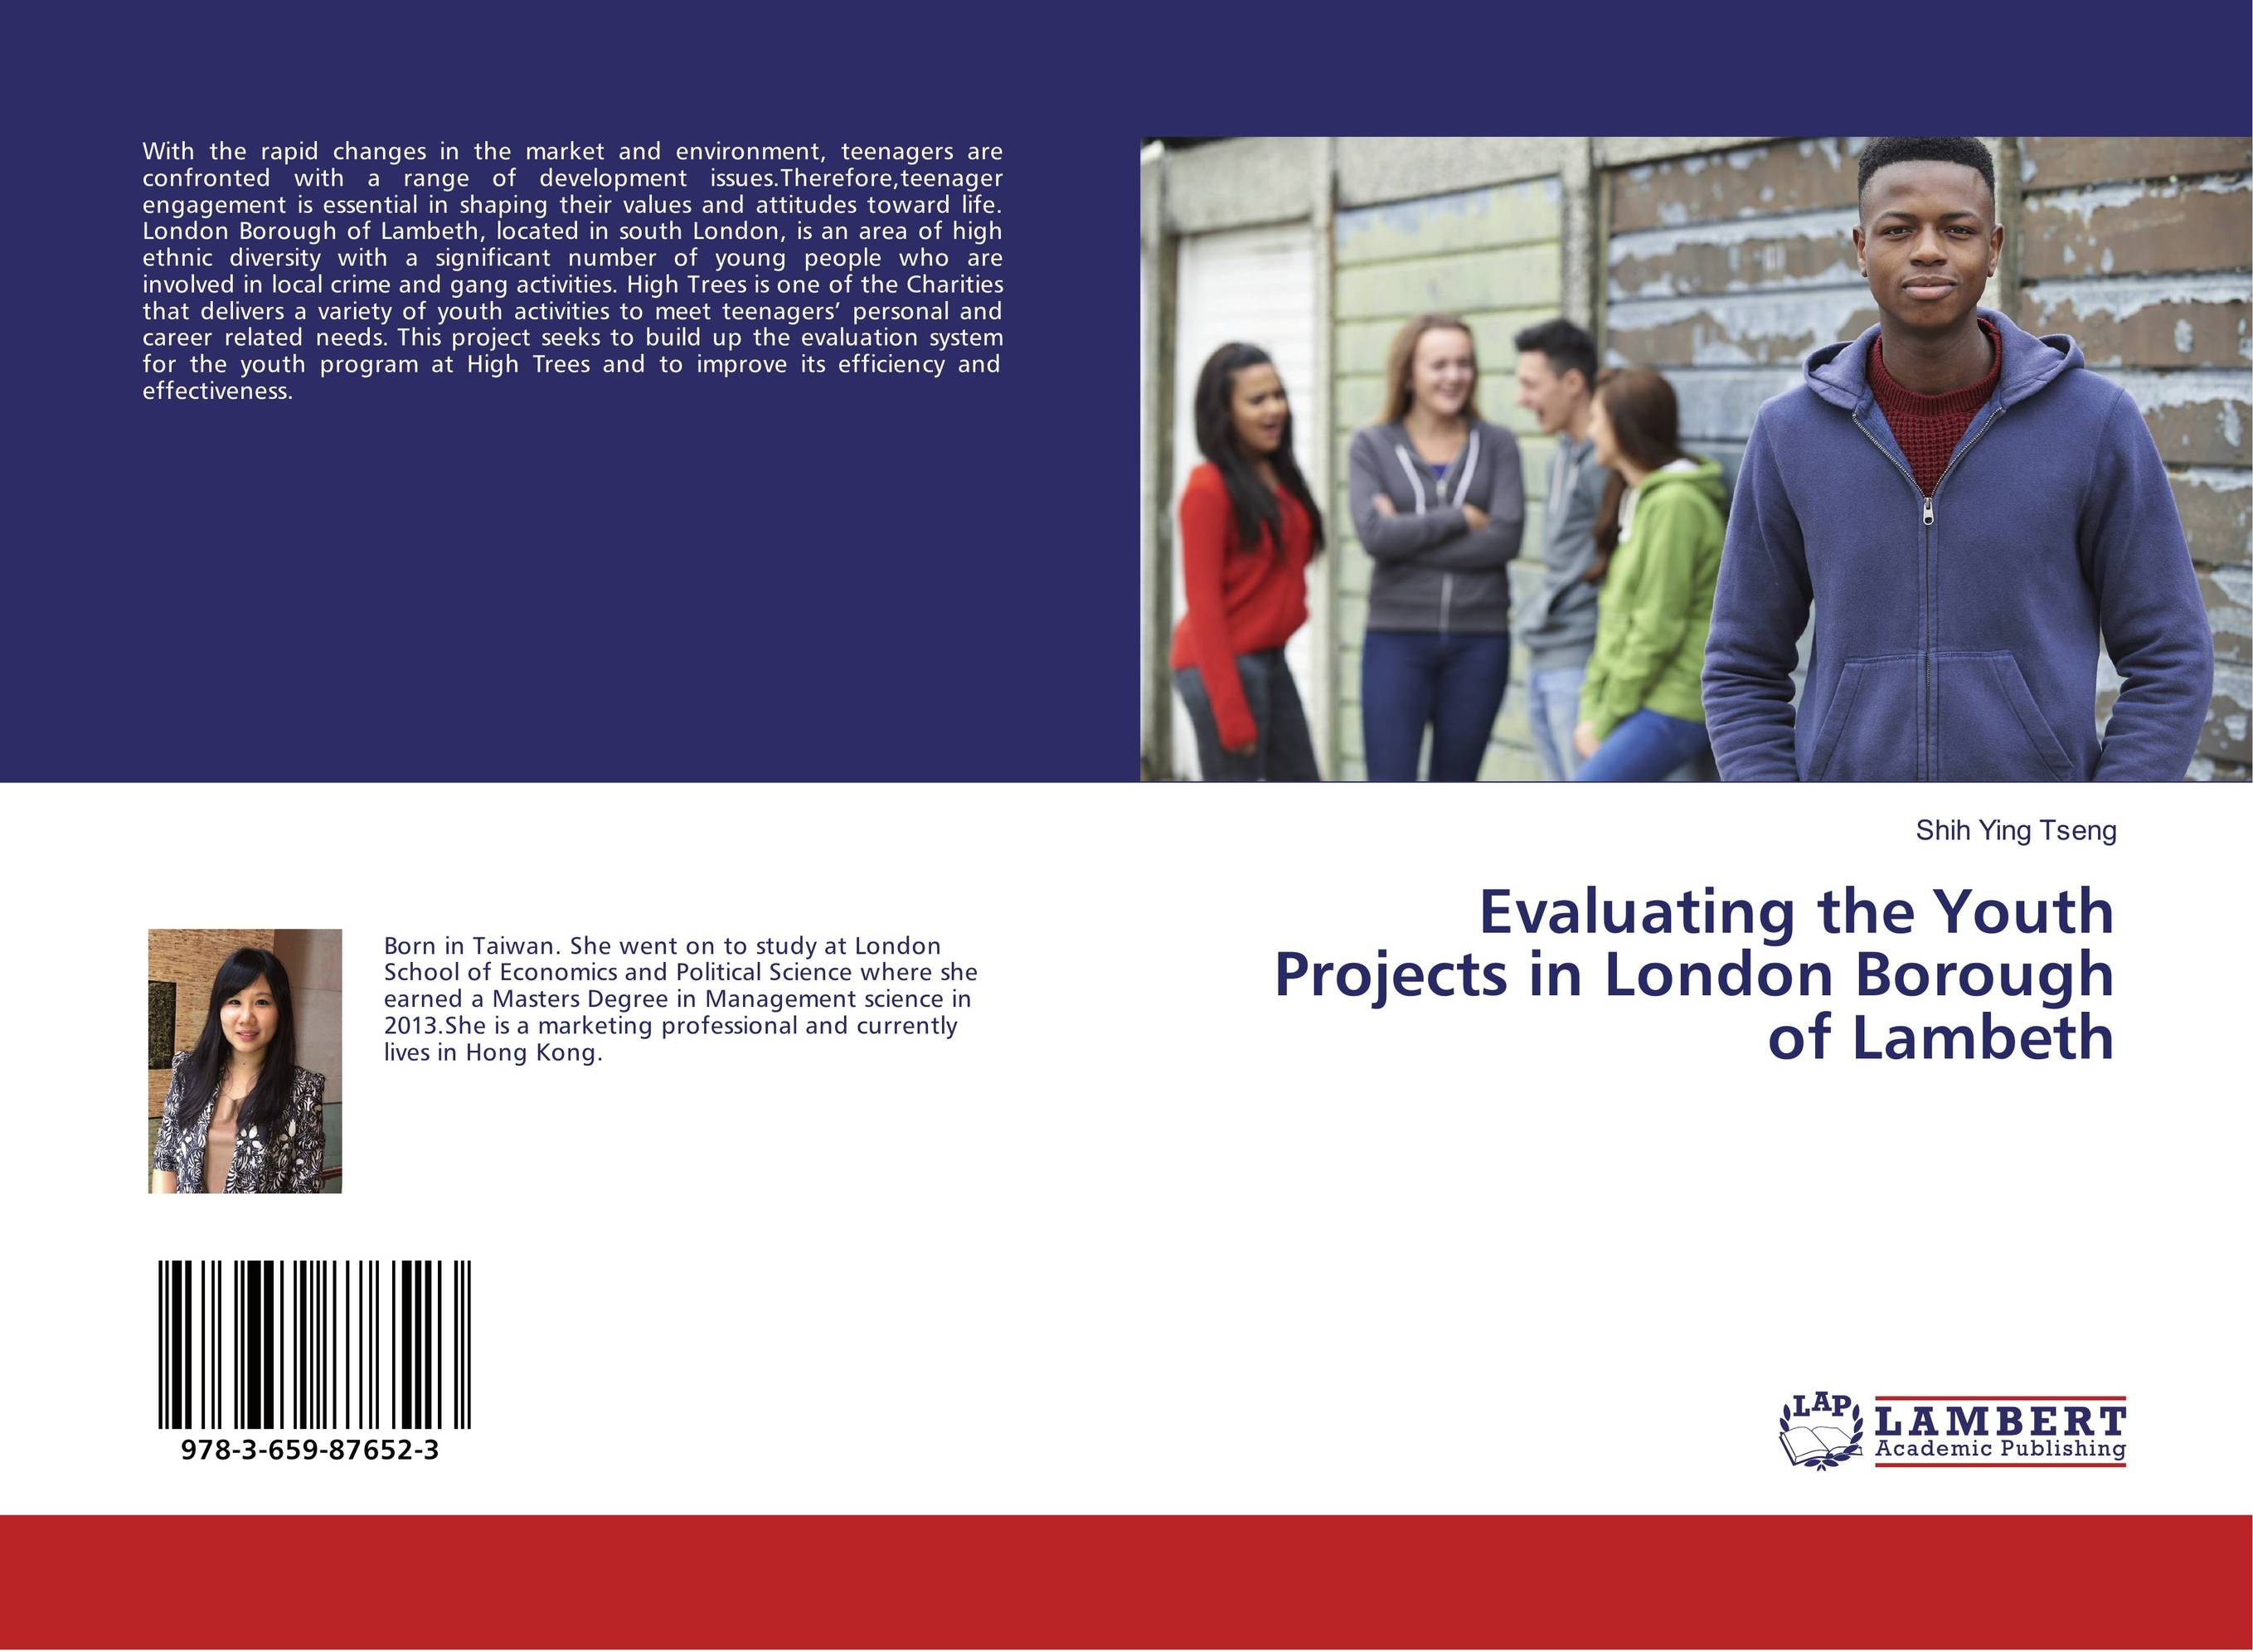 Evaluating the Youth Projects in London Borough of Lambeth teenagers and their counseling needs